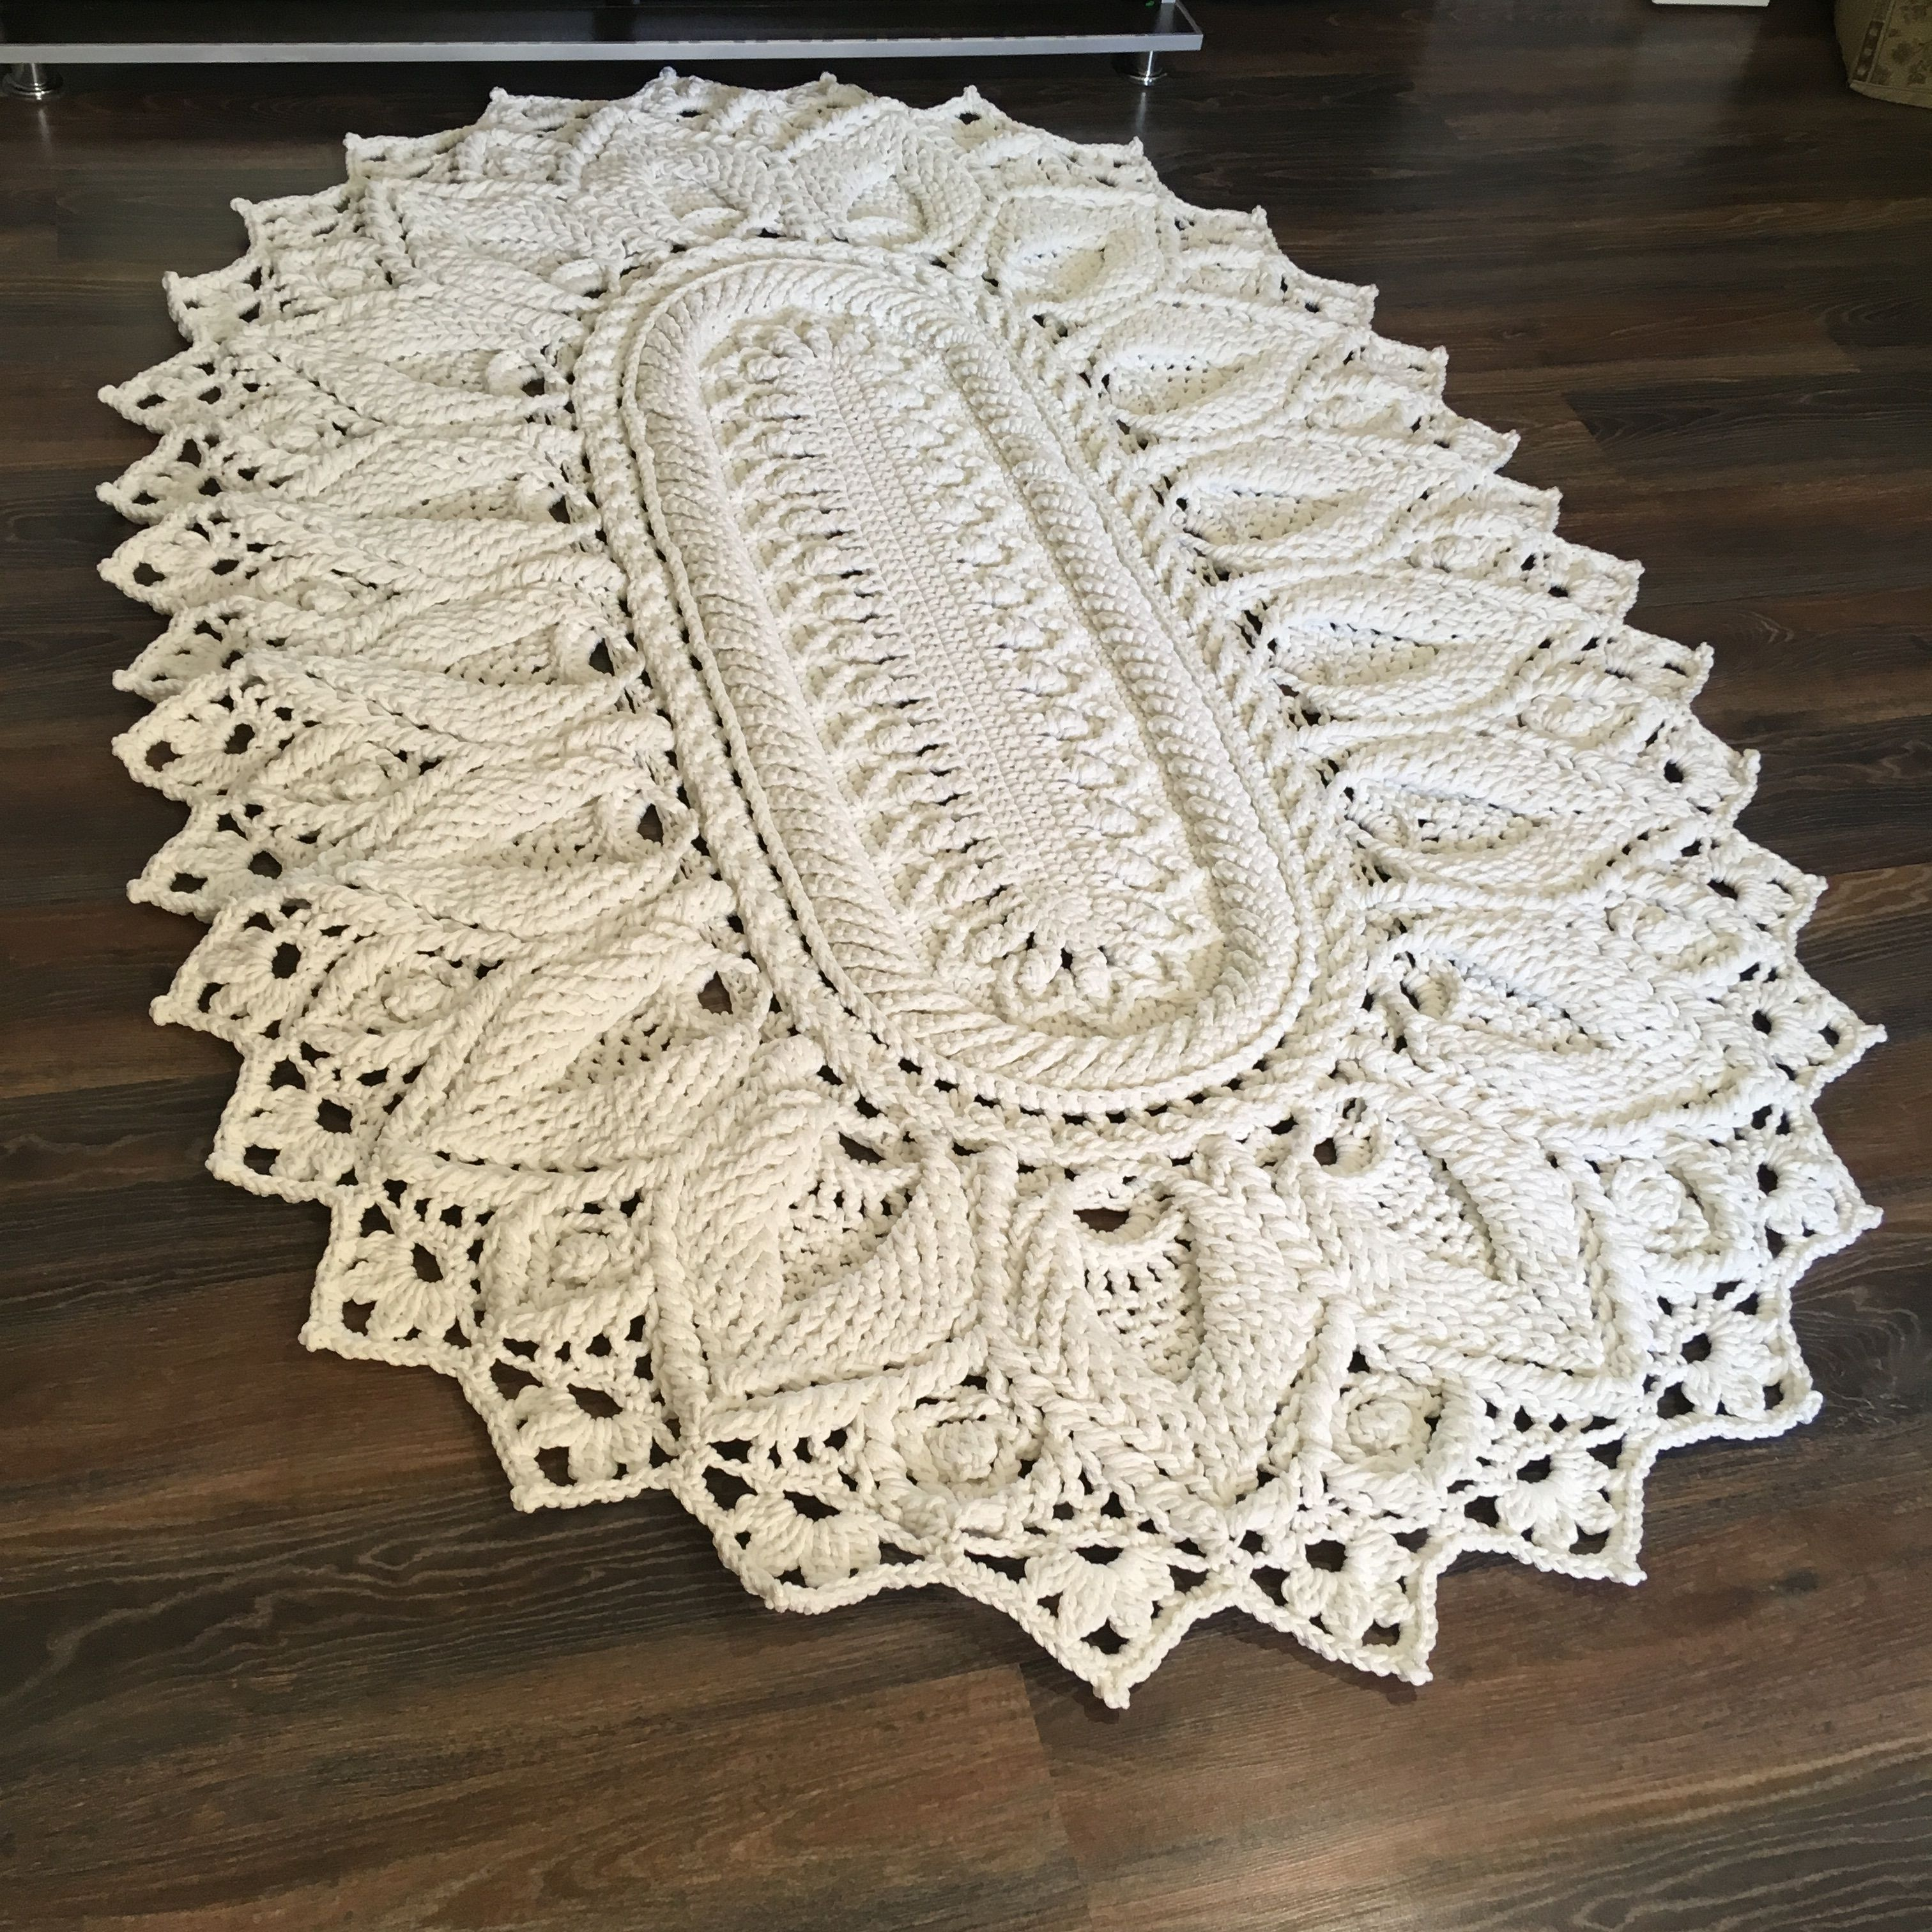 Crochet Video Tutorial On A Large Oval Cord Carpet English Etsy In 2020 Crochet Rug Patterns Crochet Videos Tutorials Crochet Rug